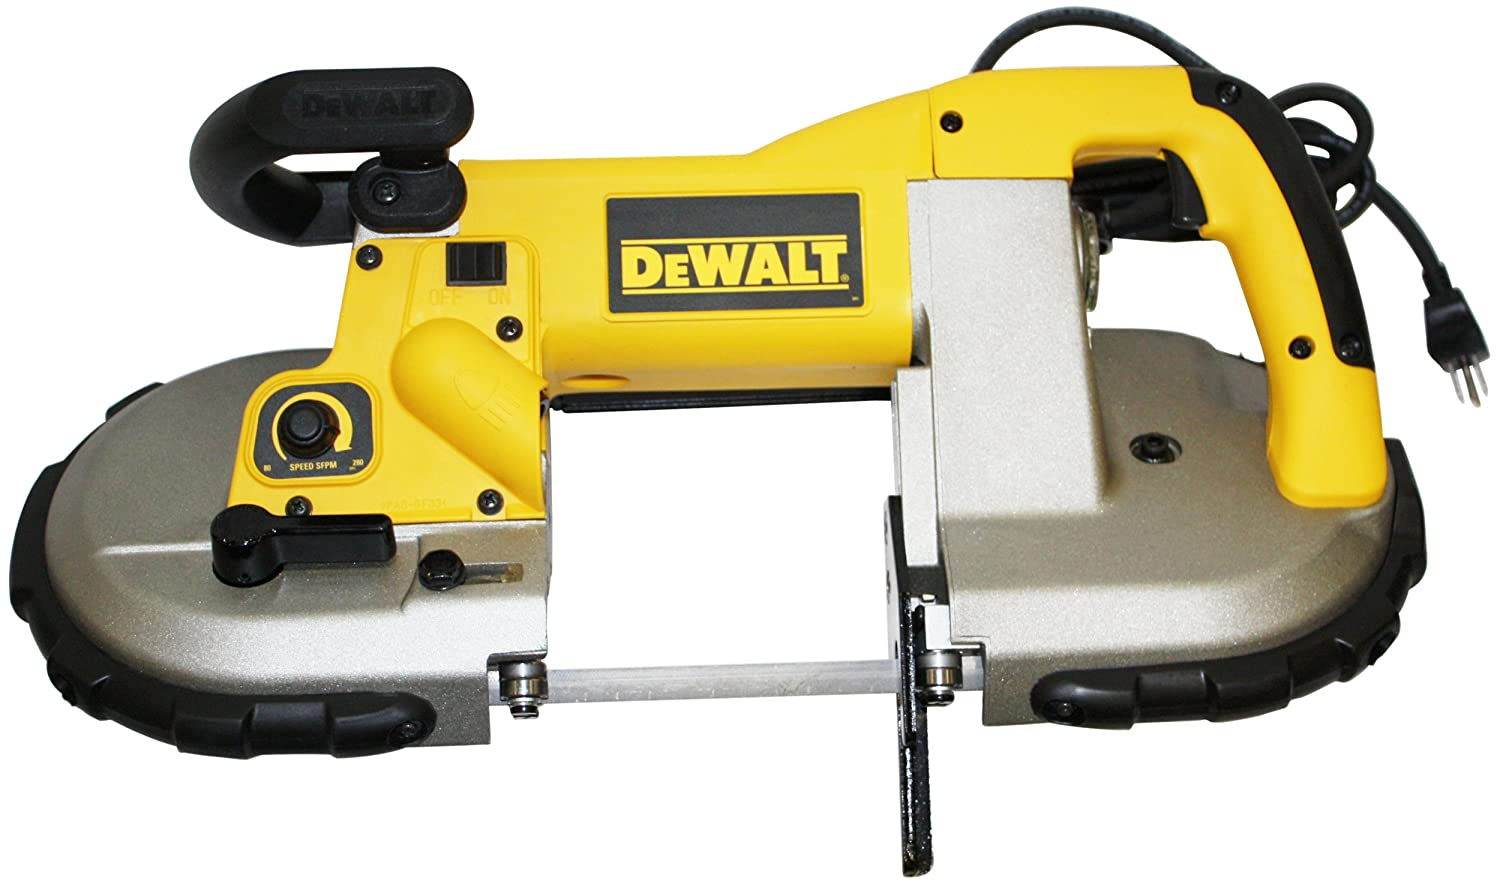 DEWALT D28770K 6 Amp 4-3 4-Inch-by-4-3 4-Inch Capacity 80 to 280 Feet Per Minute Variable Speed Portable Band Saw with Case